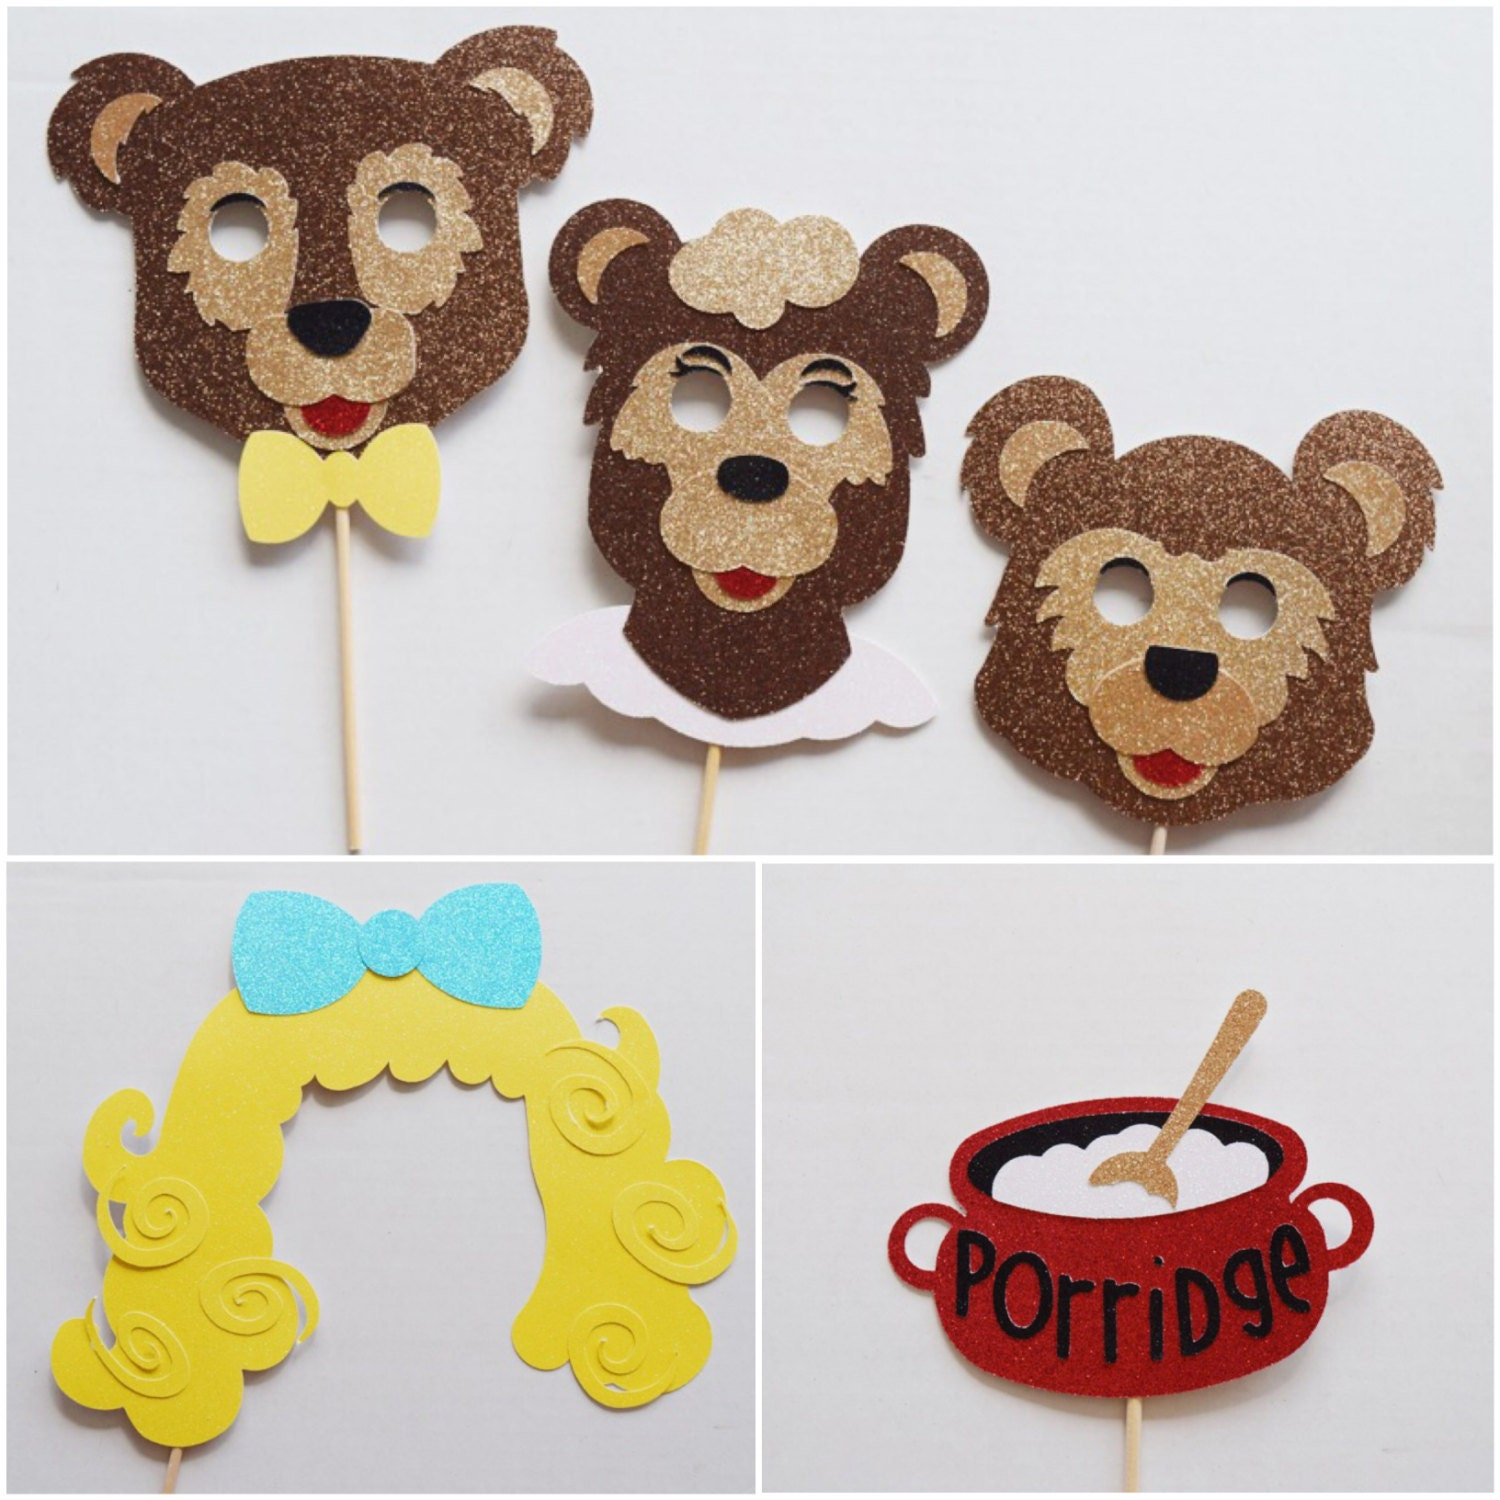 Goldilocks And The Three Bears Photo Booth Props Storybook